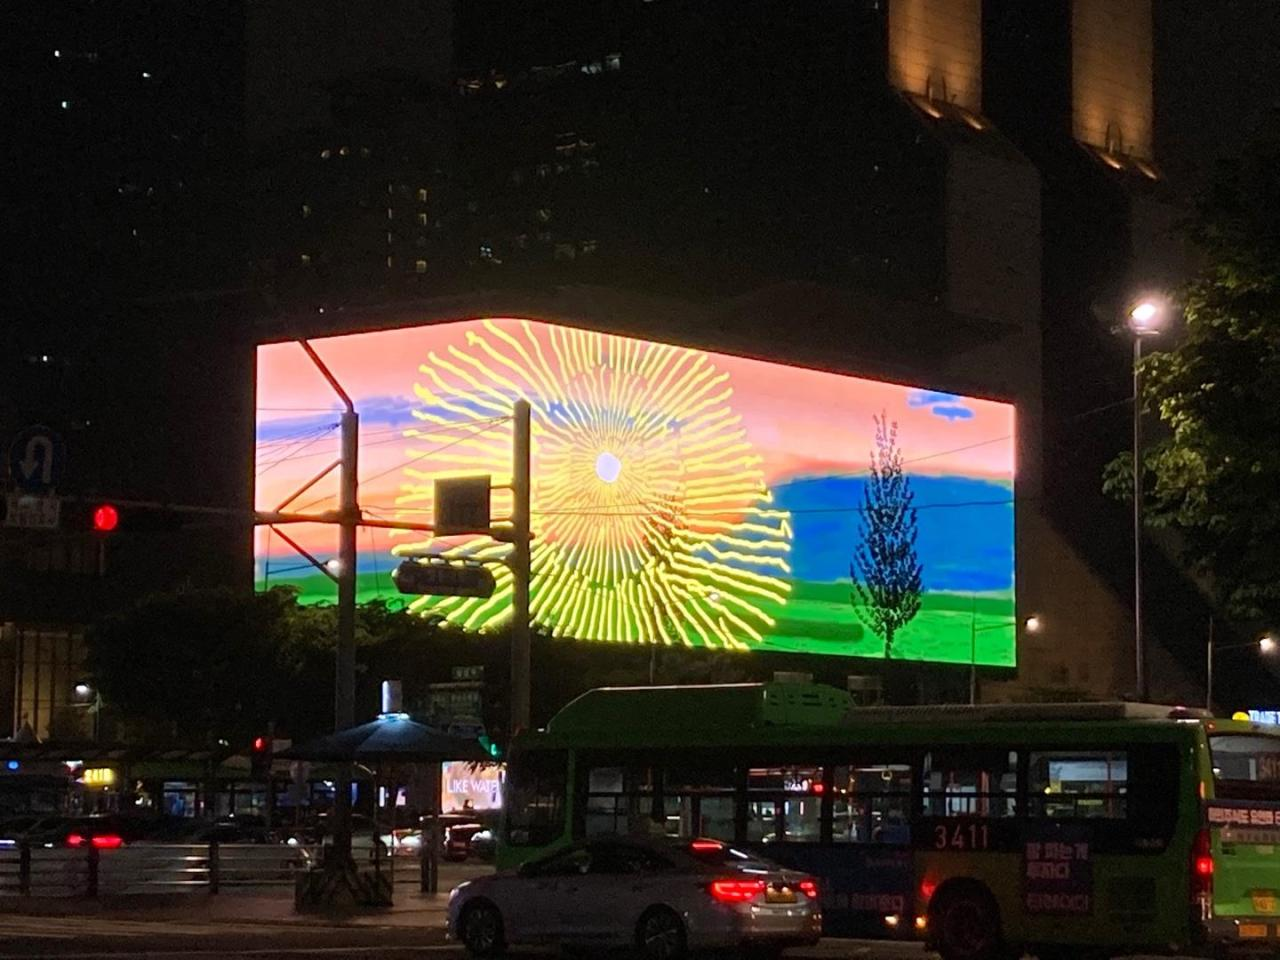 """David Hockney's """"Remember you cannot look at the sun or death for very long"""" video is shown on the LED screen at K-pop Square in Samseong-dong, Seoul, Saturday. (Yonhap)"""